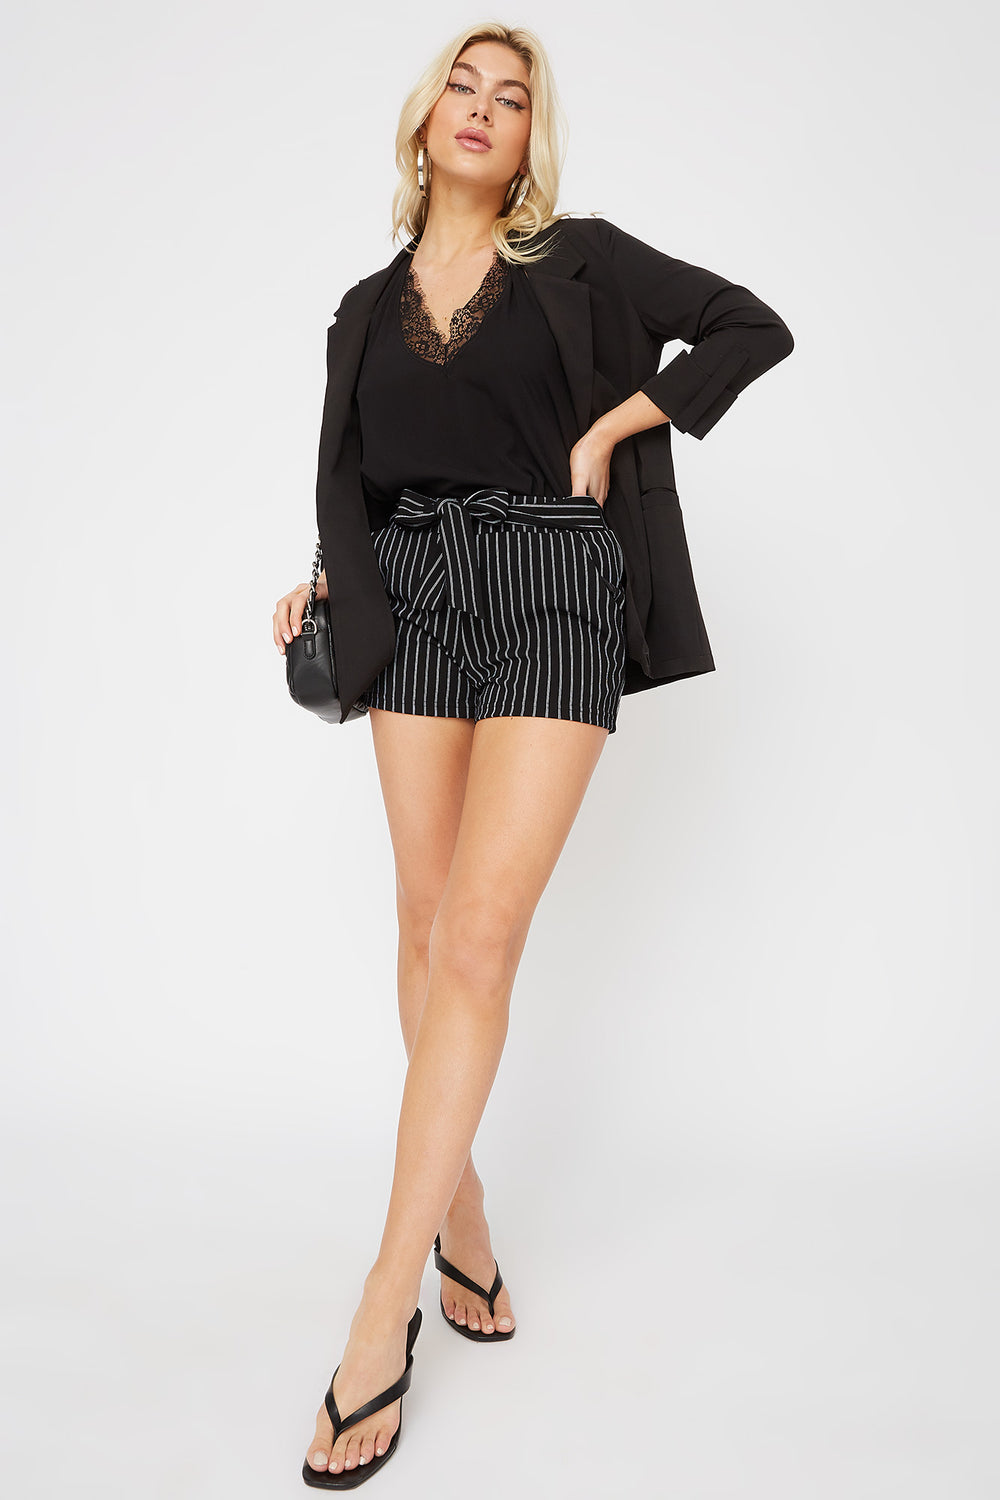 Knit Striped Short Black with White